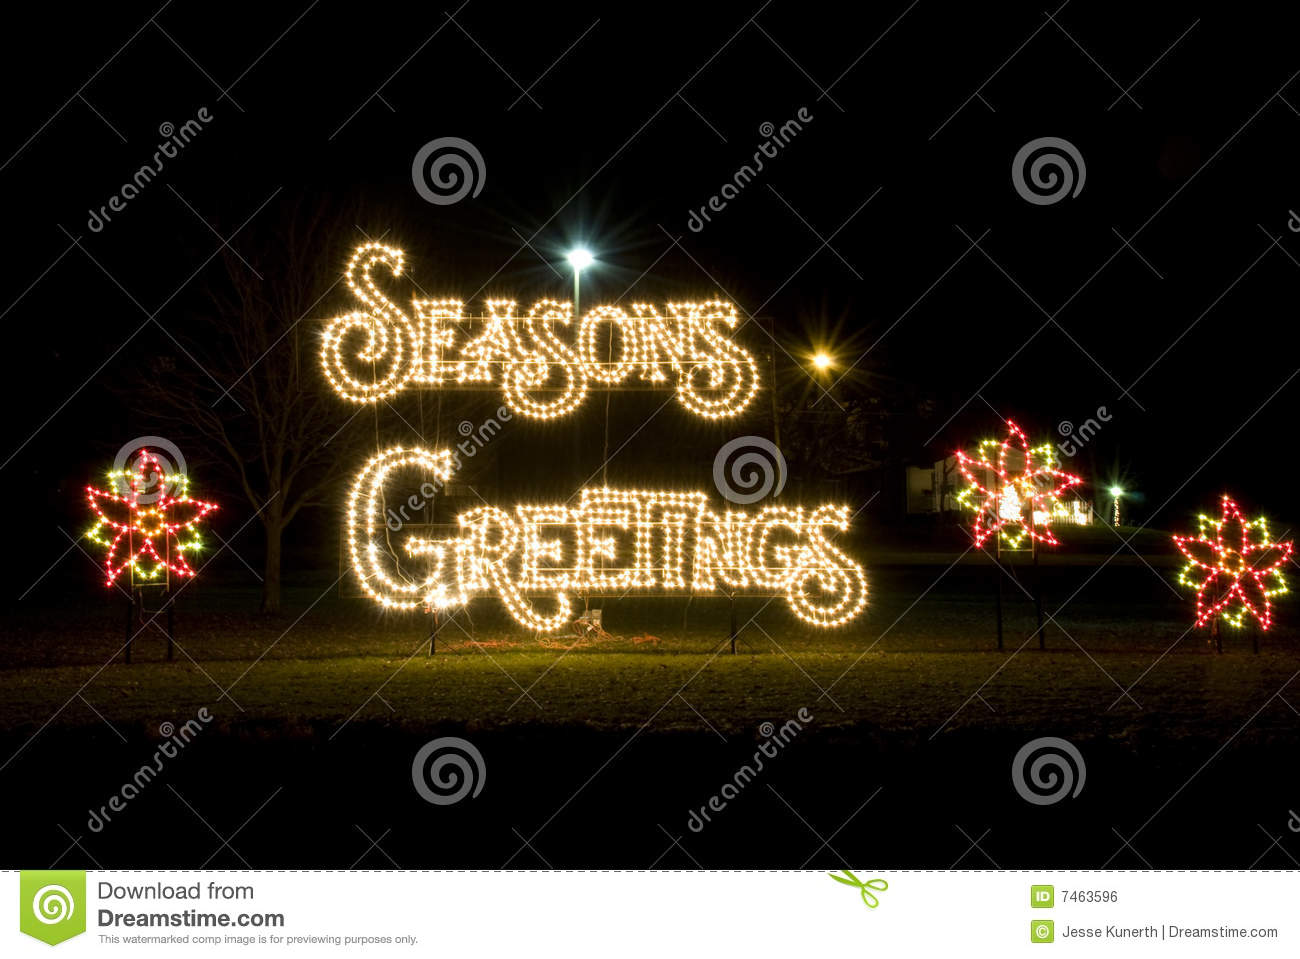 Season greetings christmas lights stock photo image of christmas season greetings christmas lights royalty free stock photo m4hsunfo Choice Image